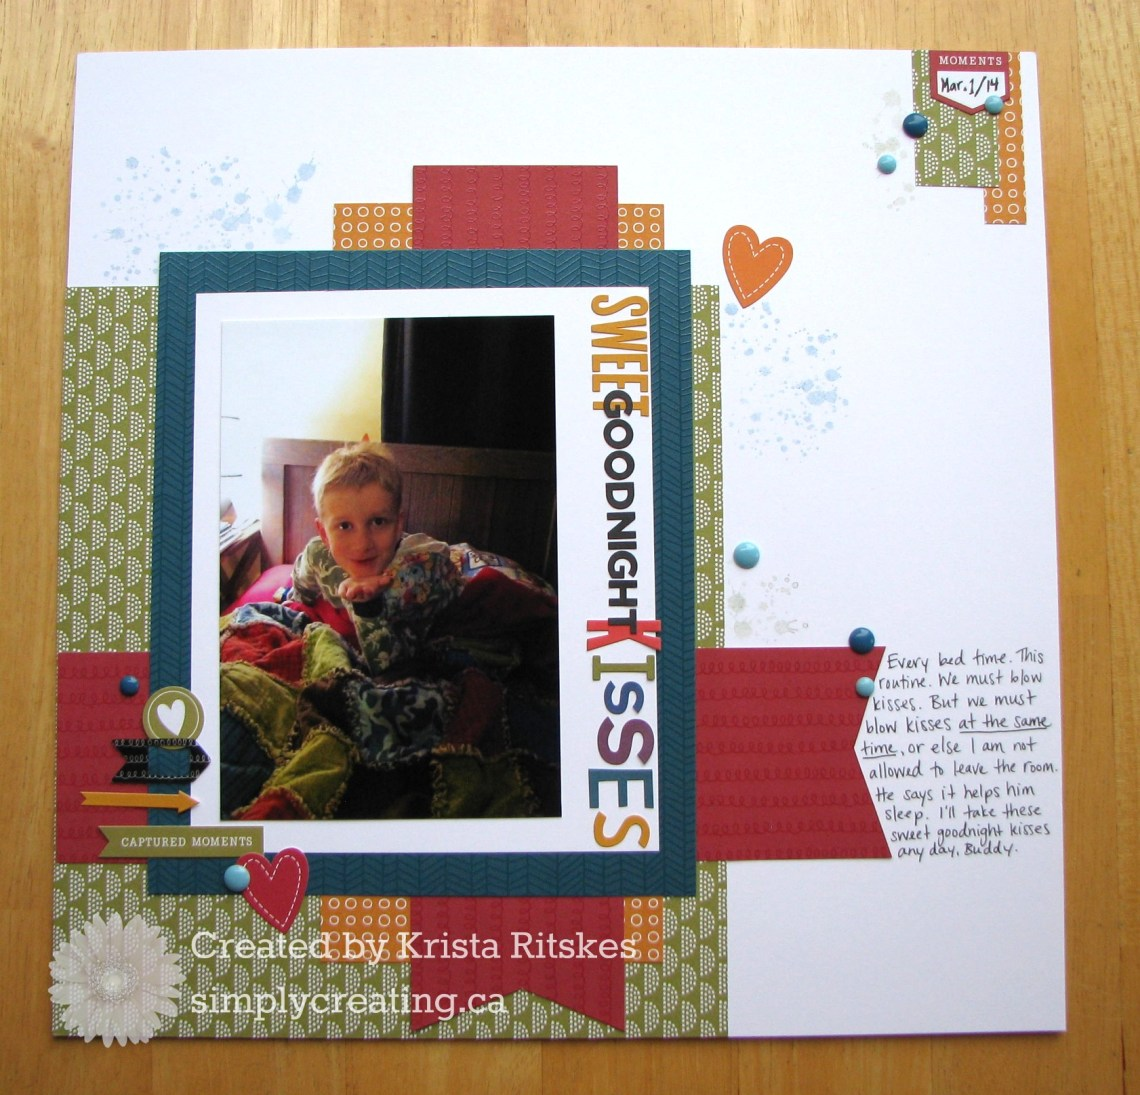 Sweet Goodnight Kisses Layout by Krista Ritskes